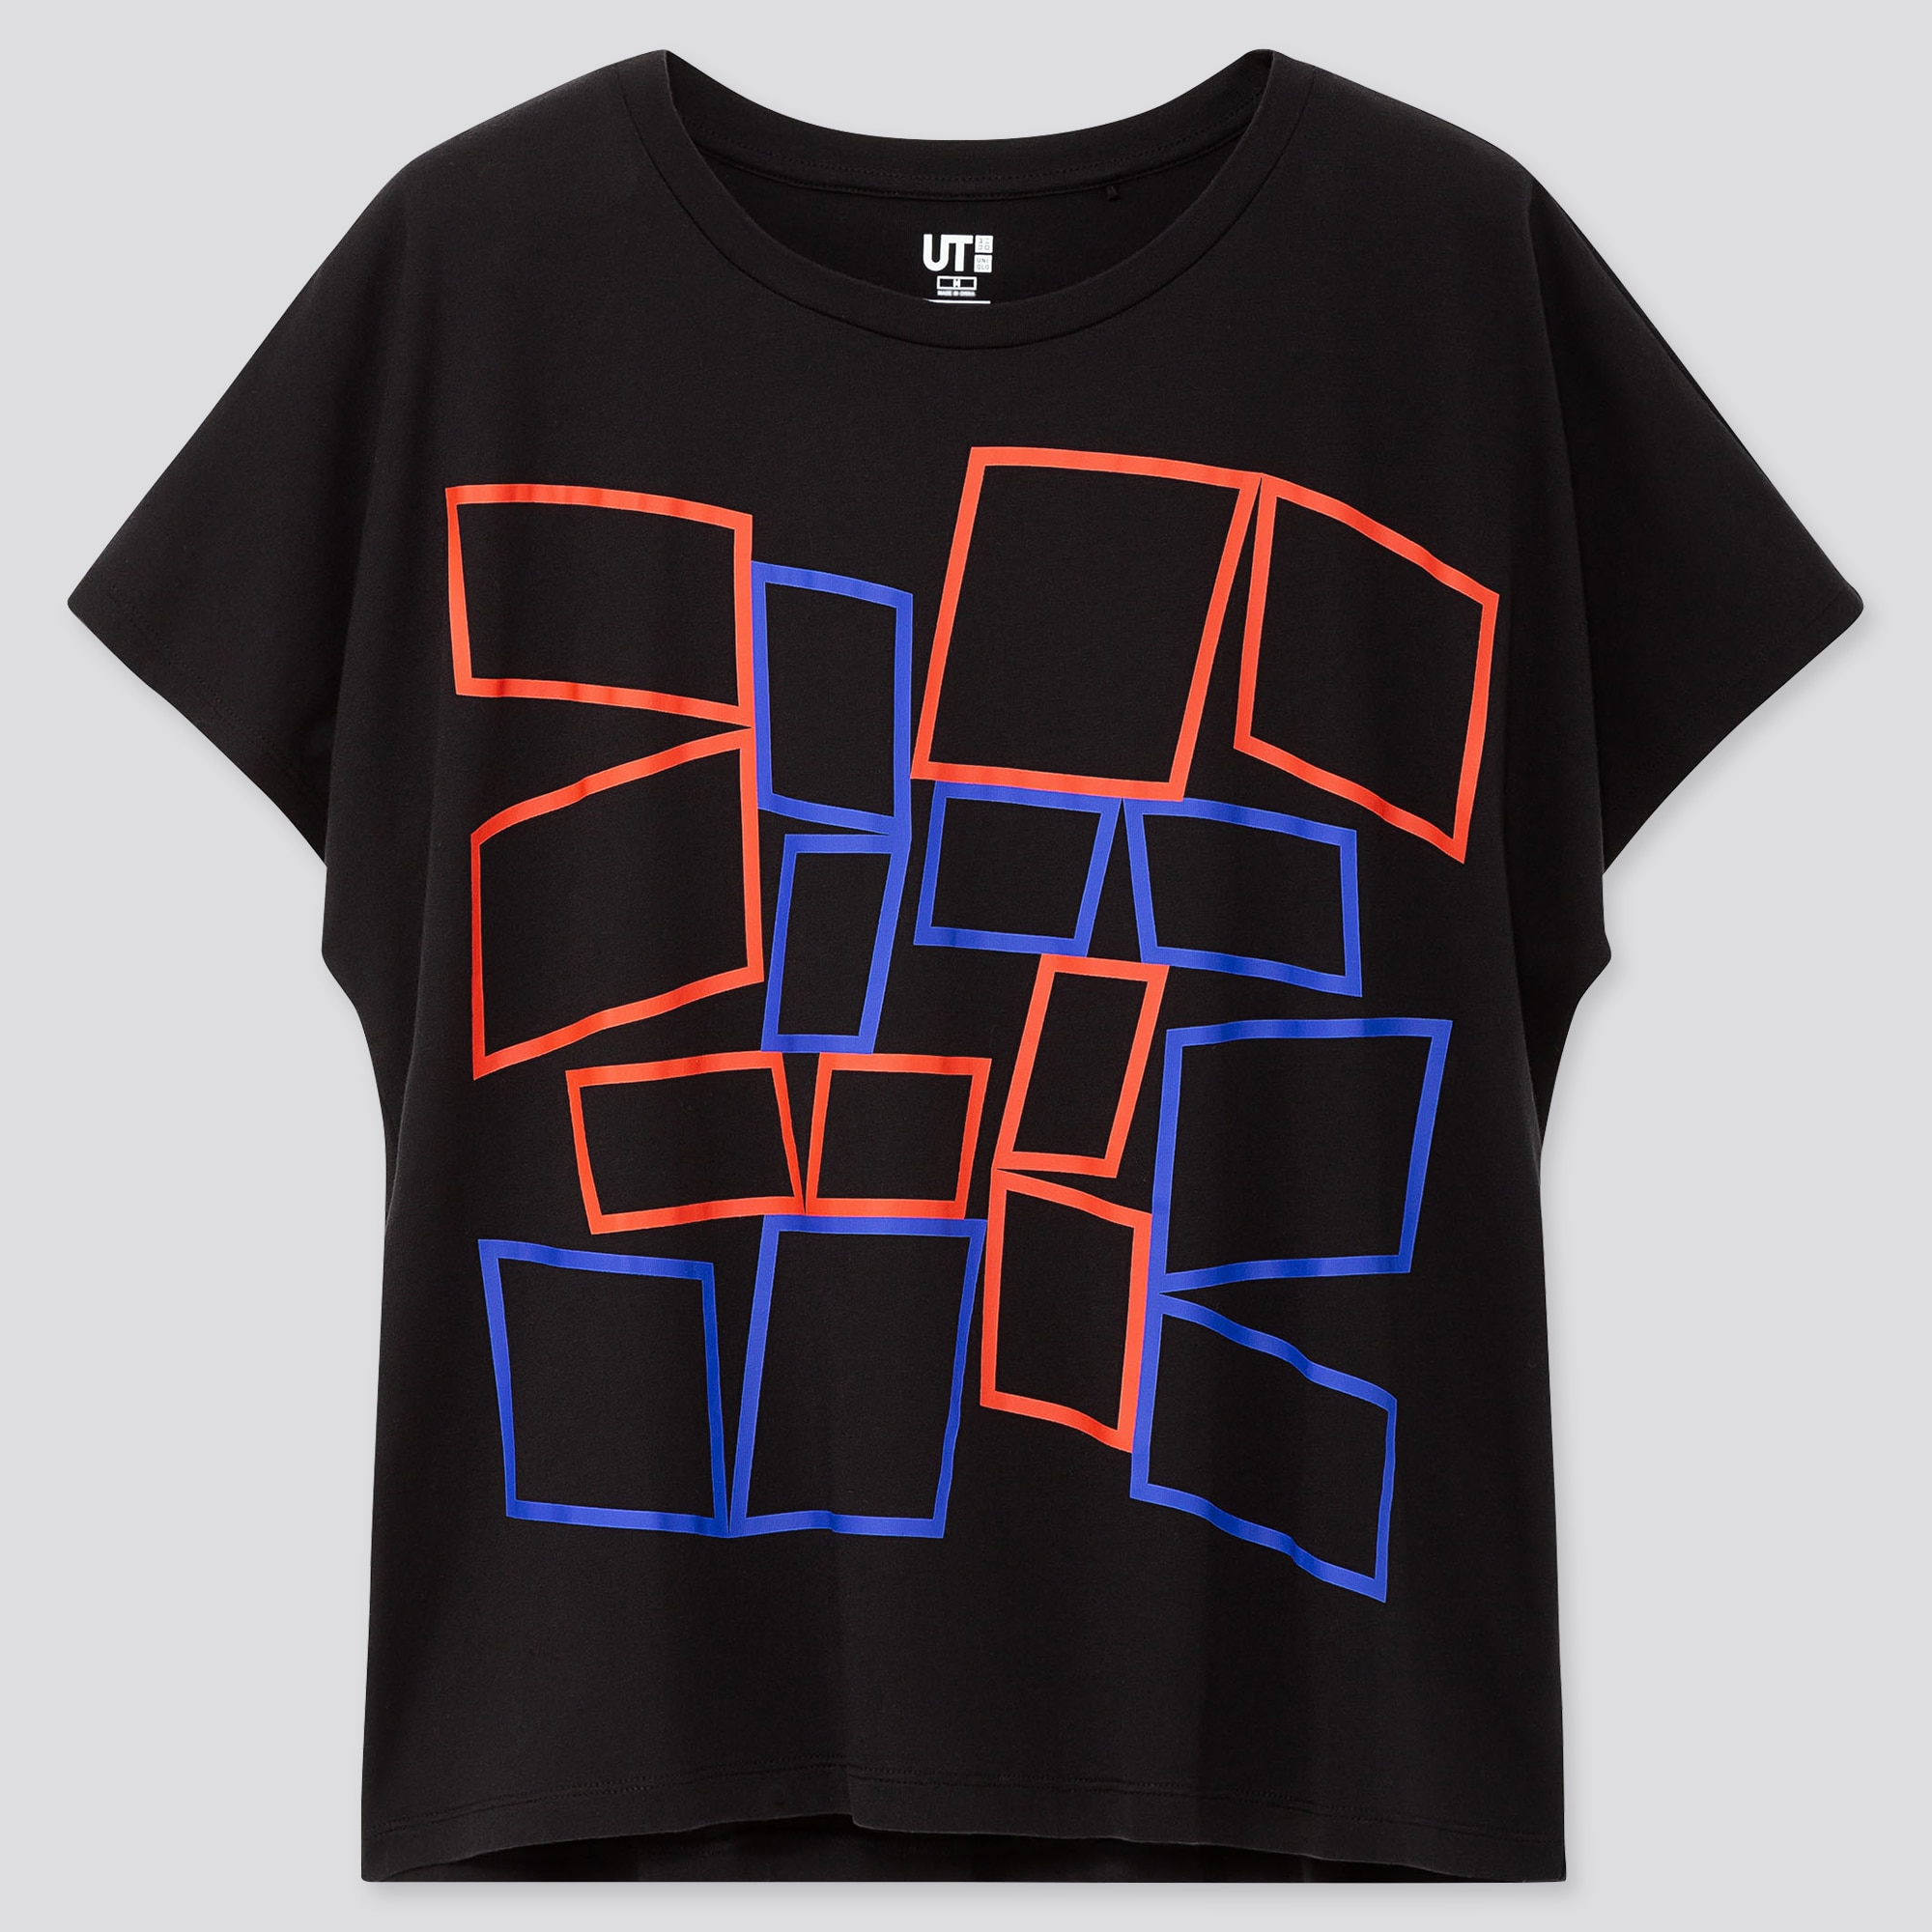 WOMEN COLOR AND RHYTHM UT HELIO OITICICA (SHORT-SLEEVE GRAPHIC T-SHIRT)